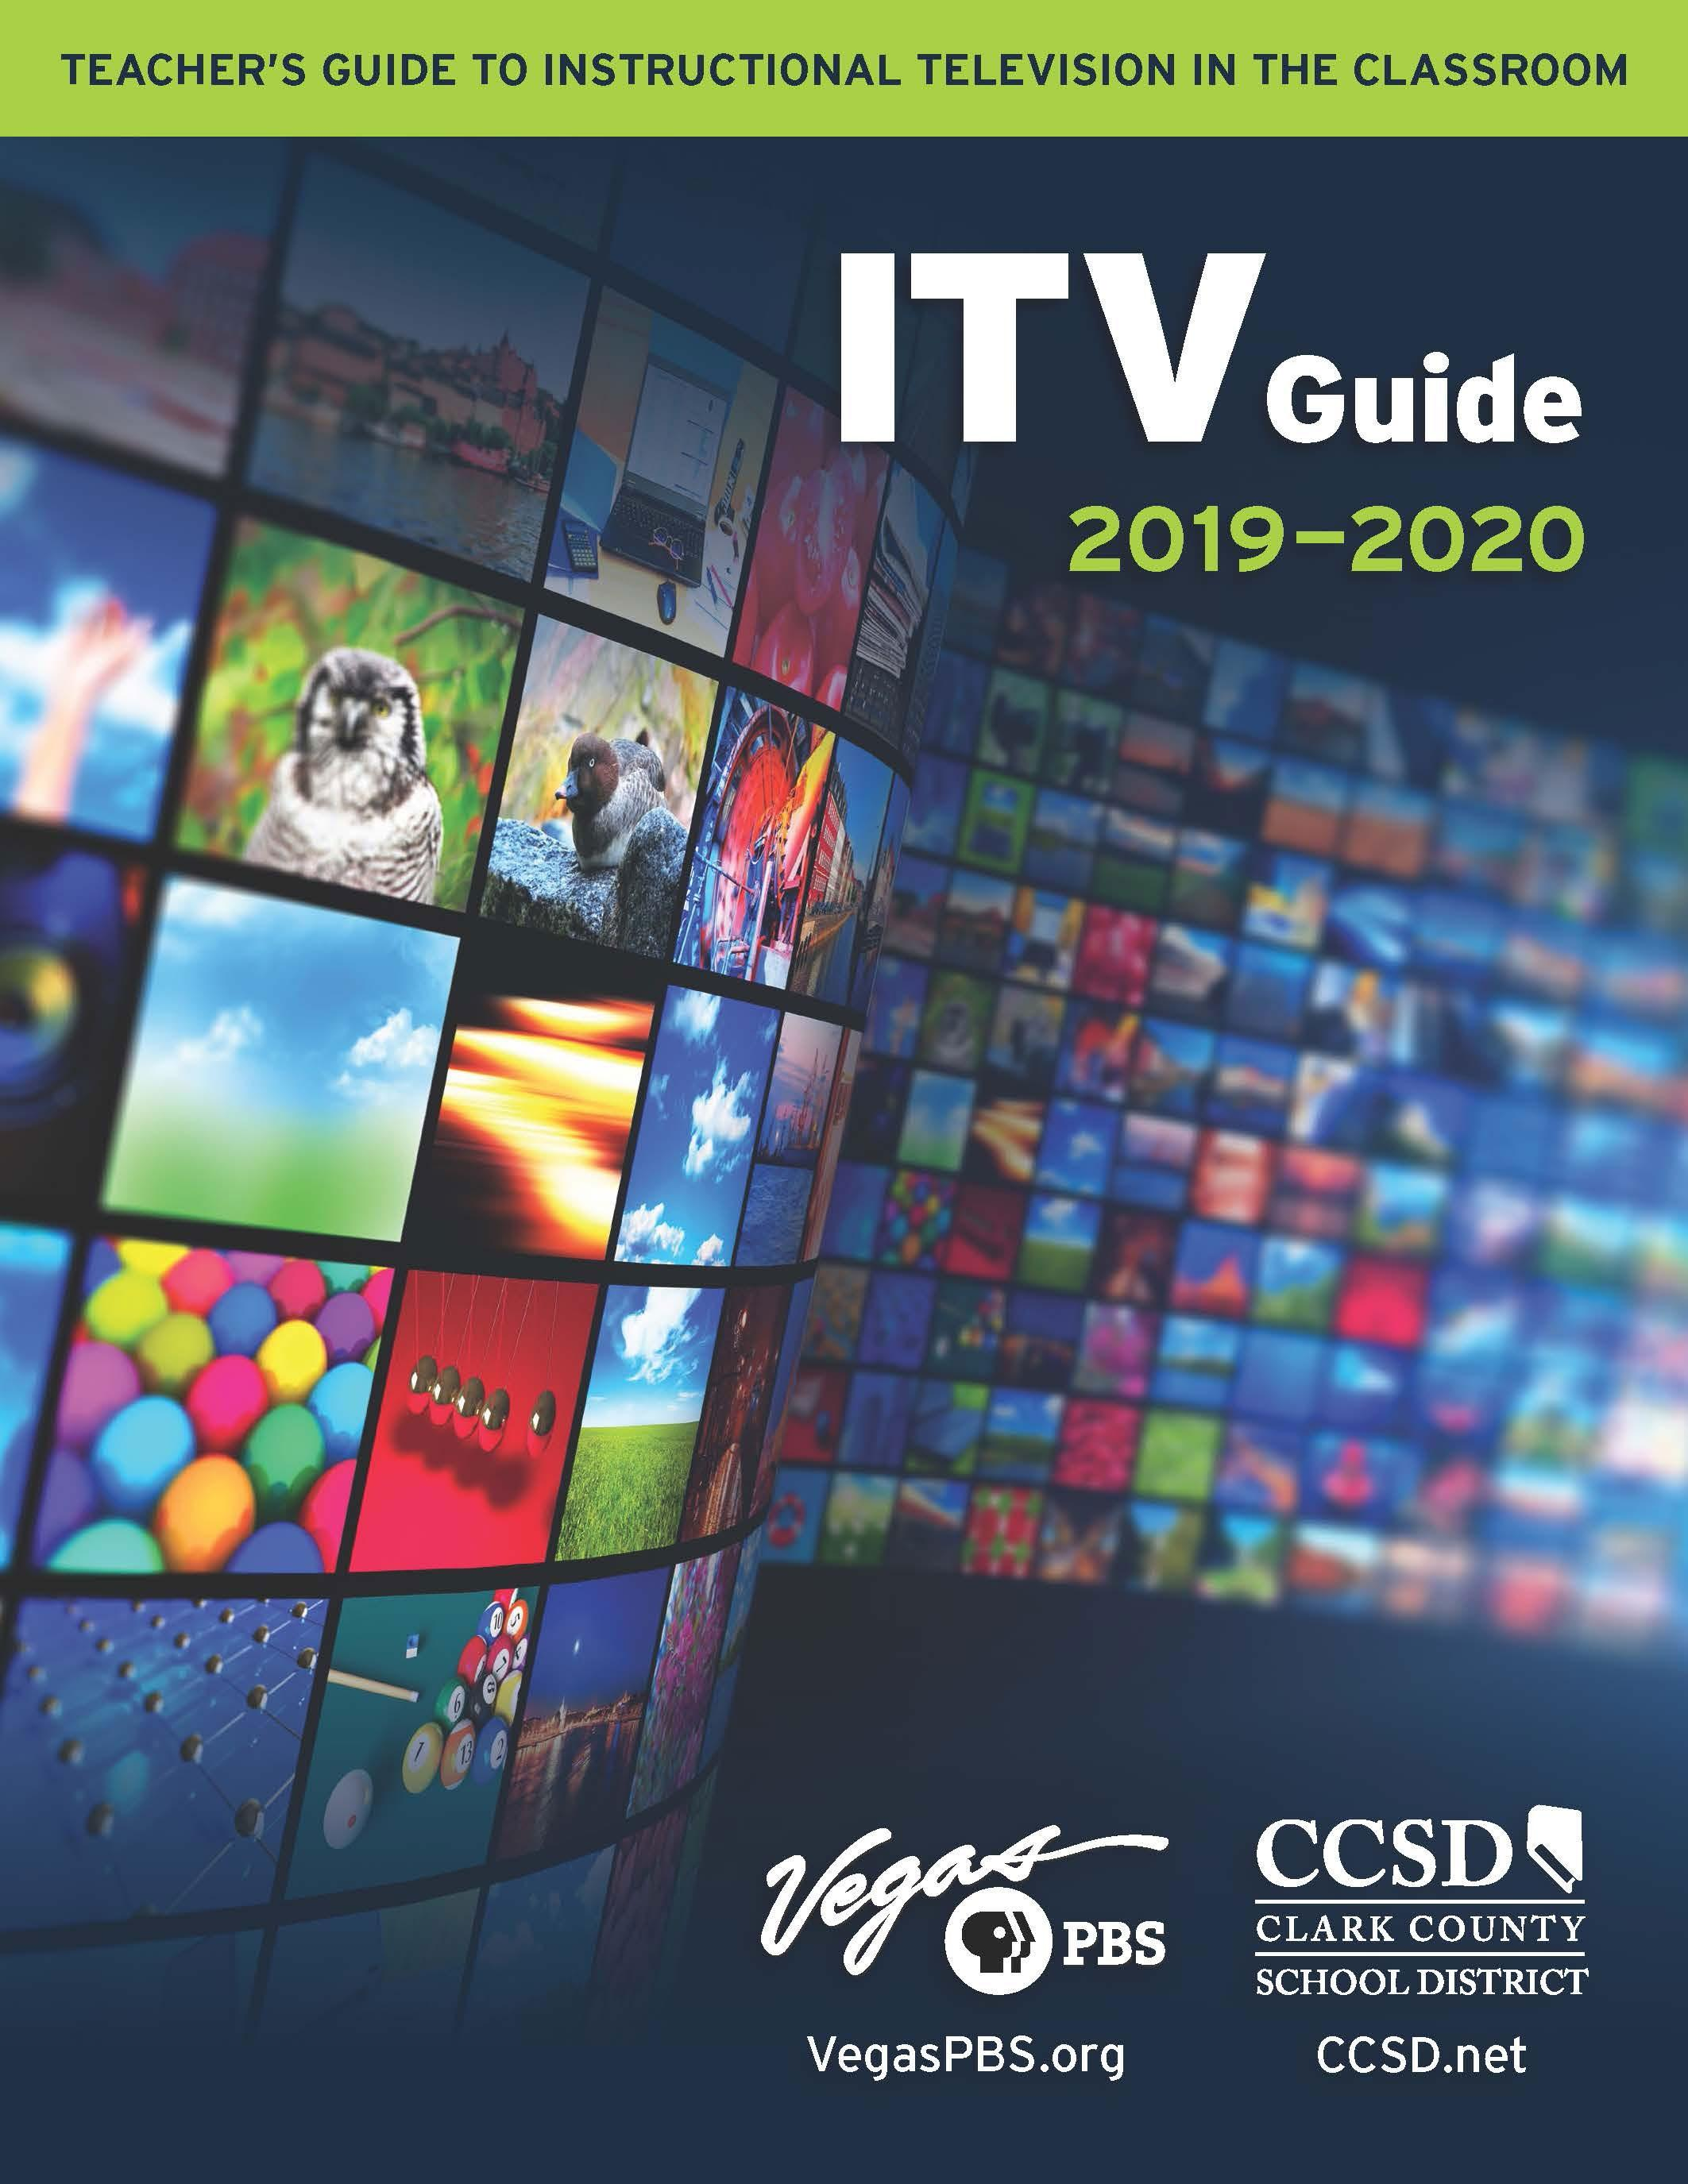 TEACHER'S GUIDE TO INSTRUCTIONAL TELEVISION IN THE CLASSROOM